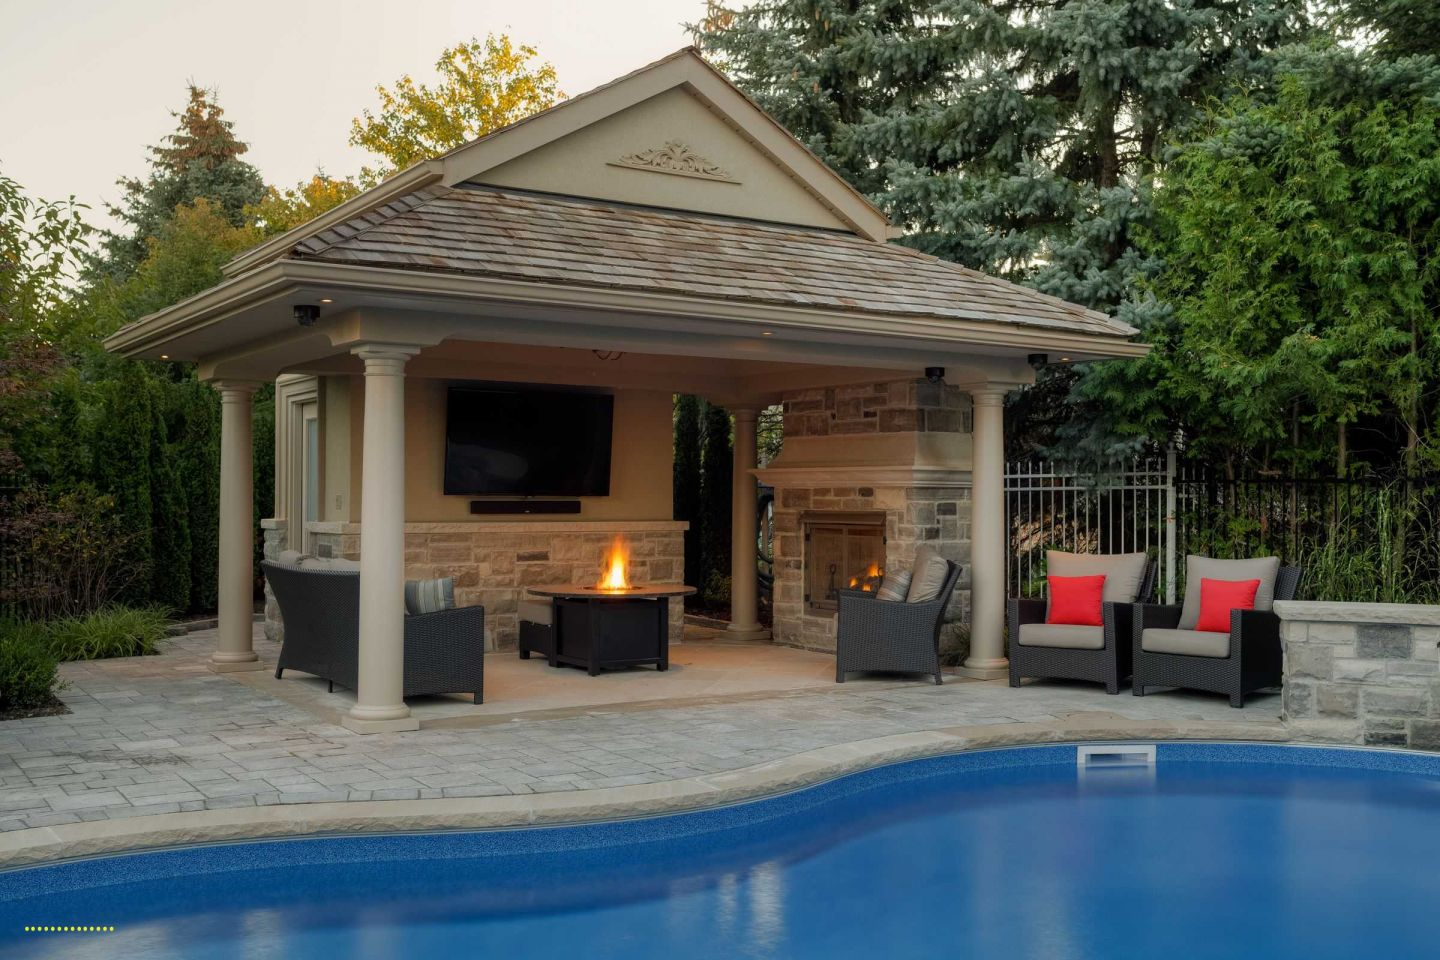 25 Pool House And Cabana Ideas For Relaxing Retreat Rustic Small